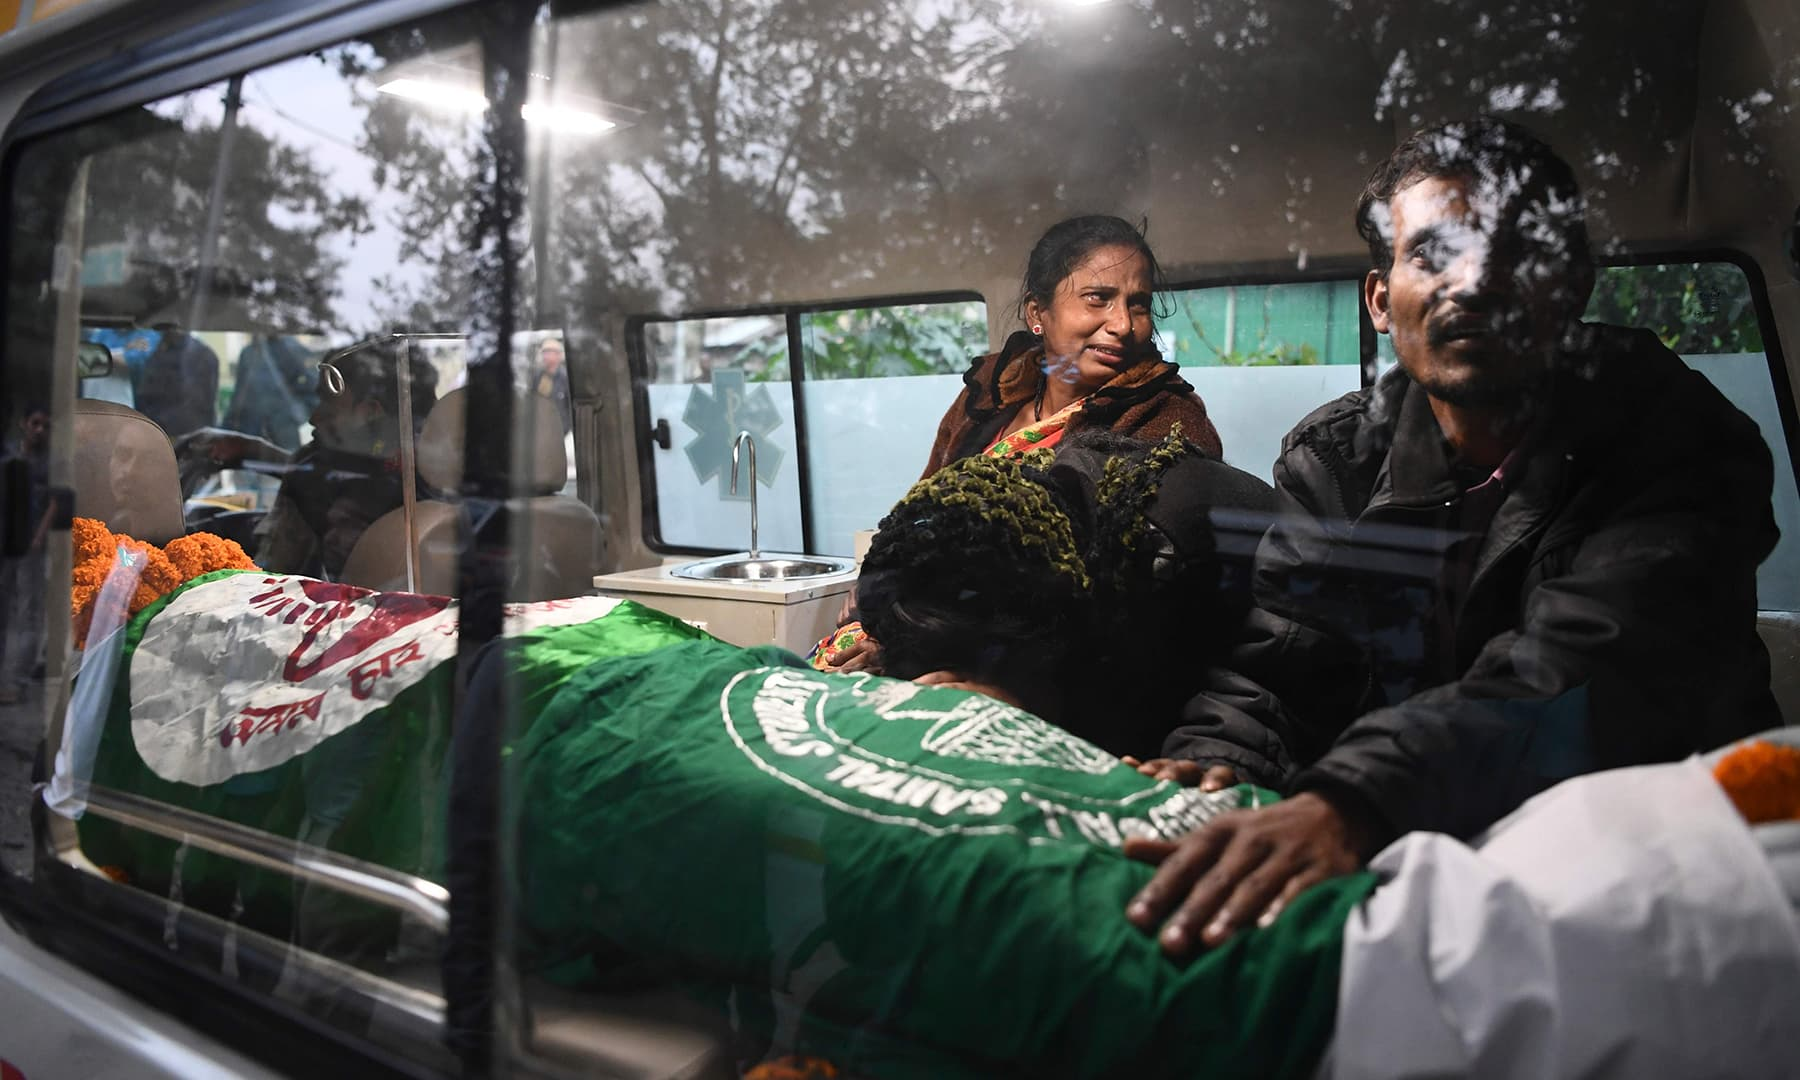 Relatives mourn inside an ambulance next to the dead body of Ishwor Nayak, 25, who was killed after police fired during a protest against the government's citizenship bill. — AFP